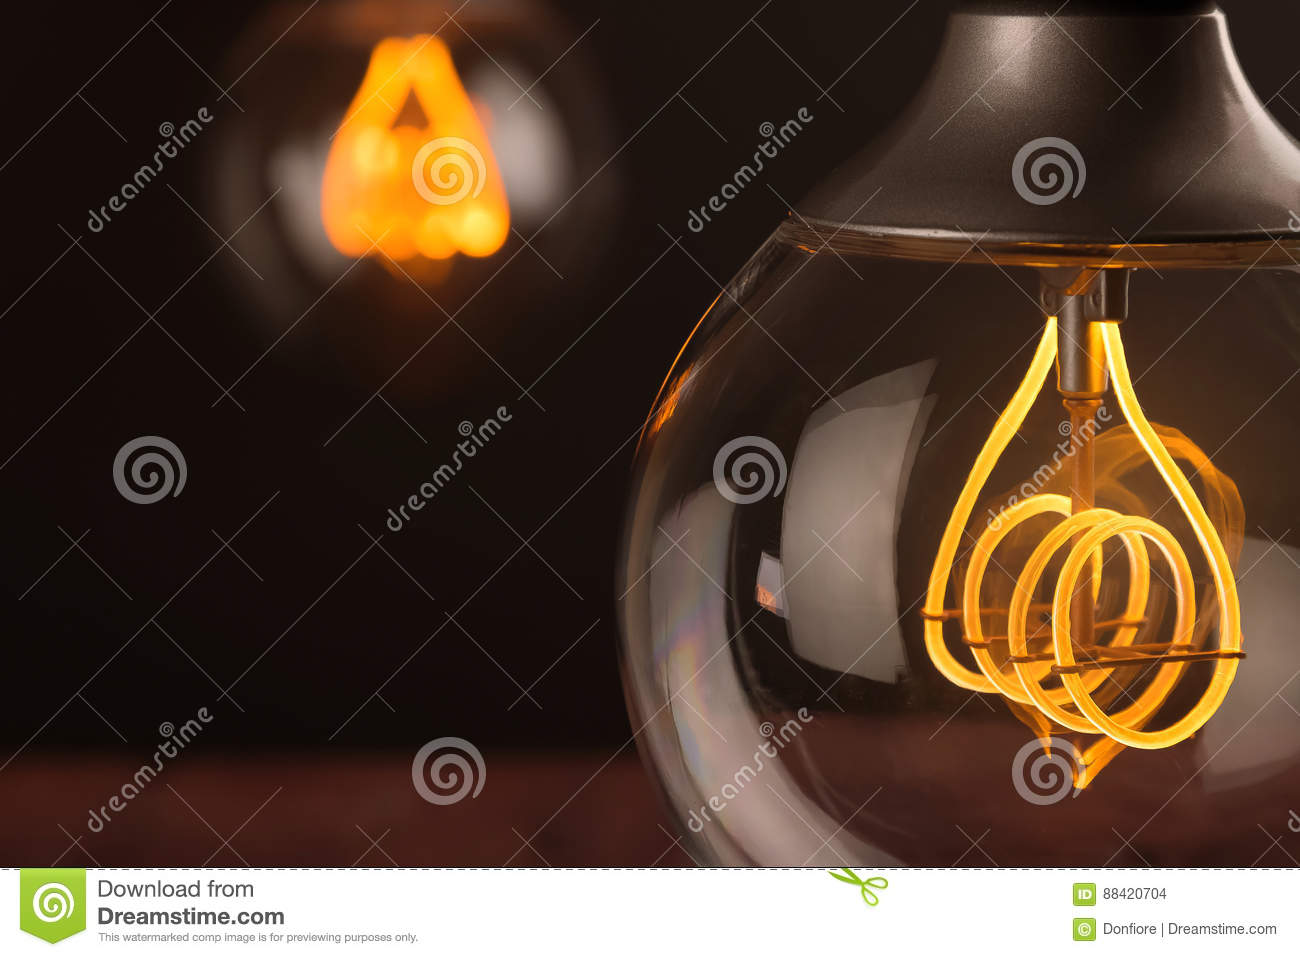 Retro vintage light bulb with led technology bult-in on warm light yellow tint and black background, energy saving with old style